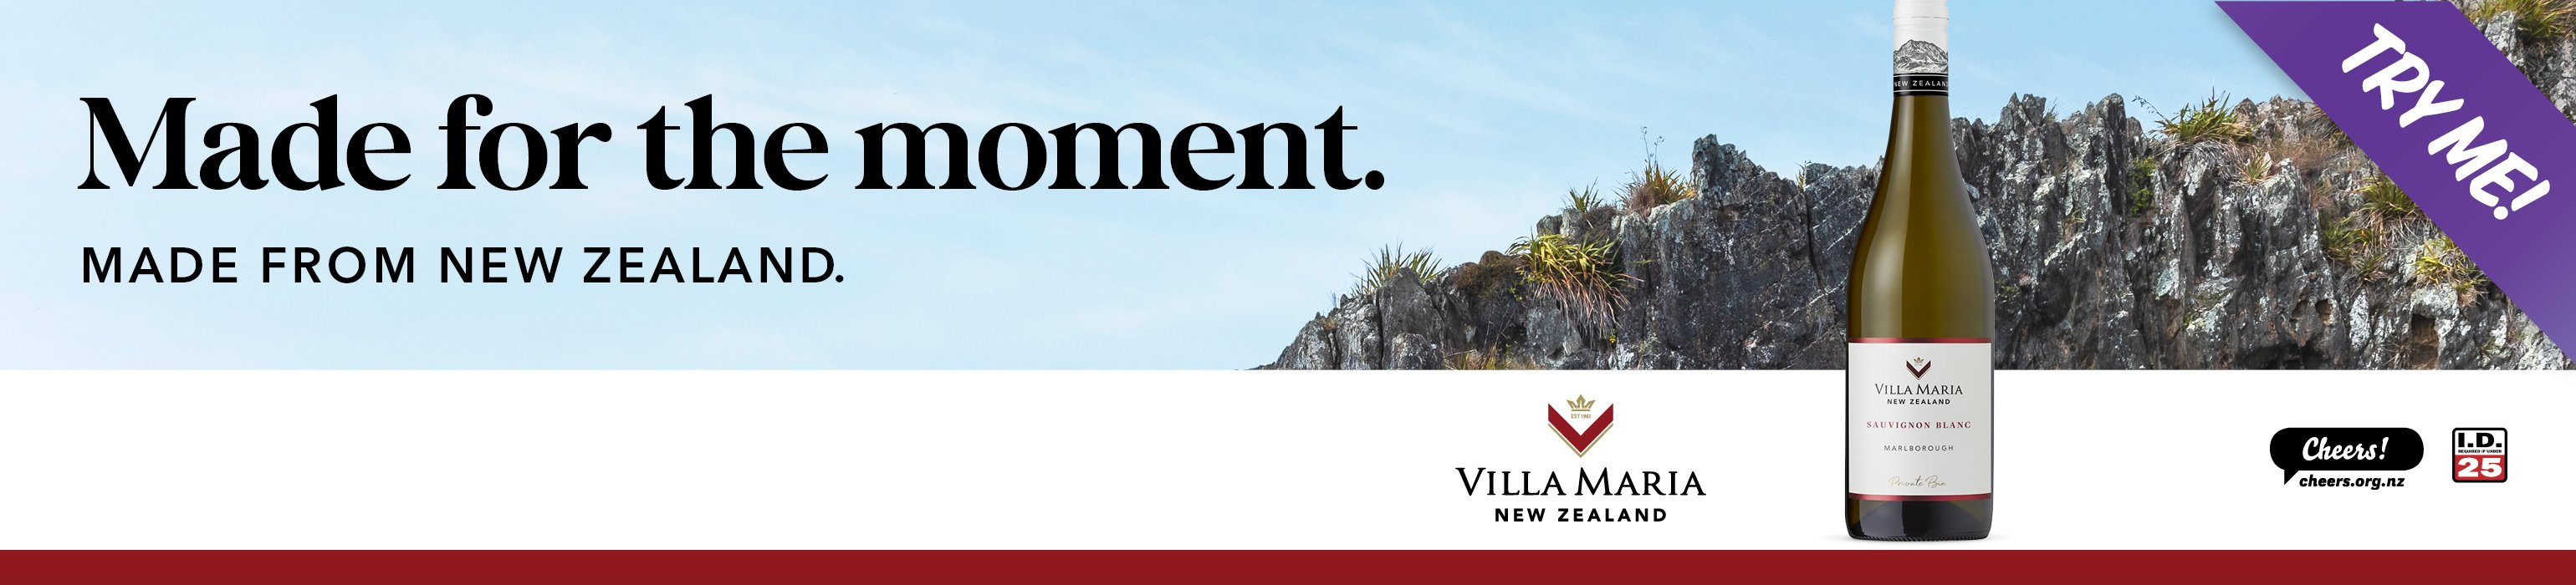 Made for the moment - Made from NZ, Villa Maria Wines Try Me